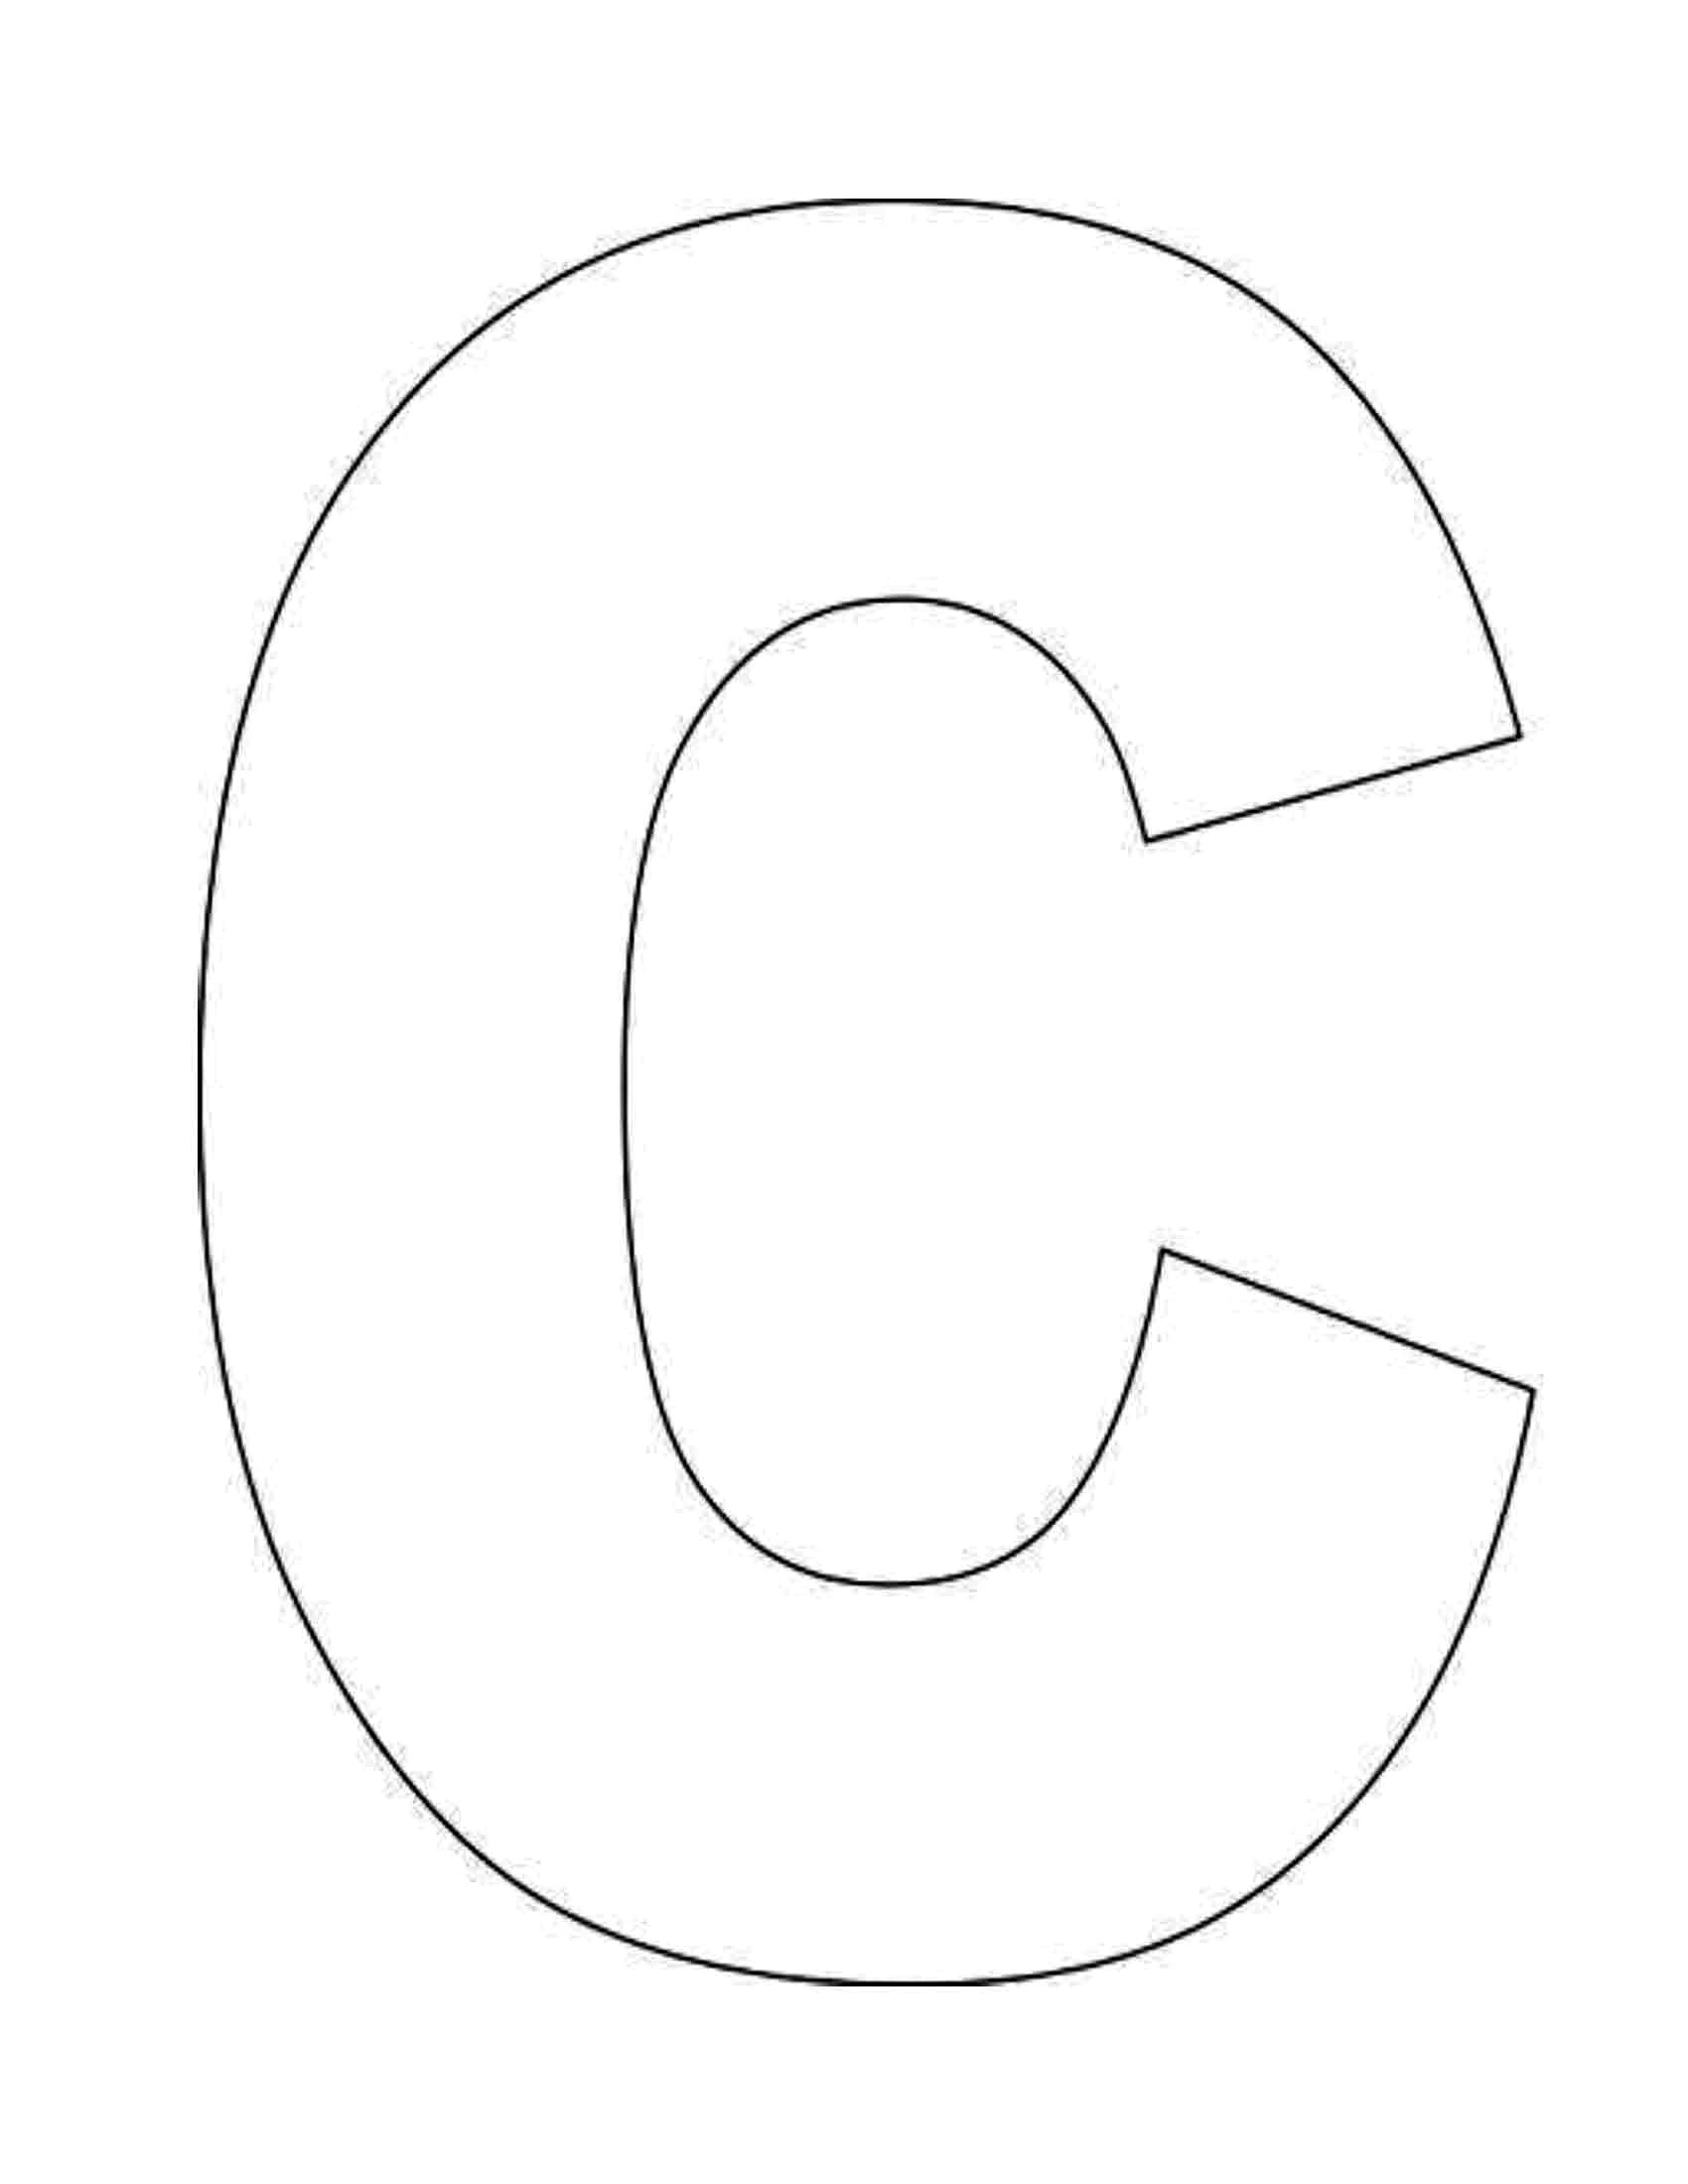 letter c coloring pages printable free letter c printable coloring pages for preschool pages coloring letter c printable